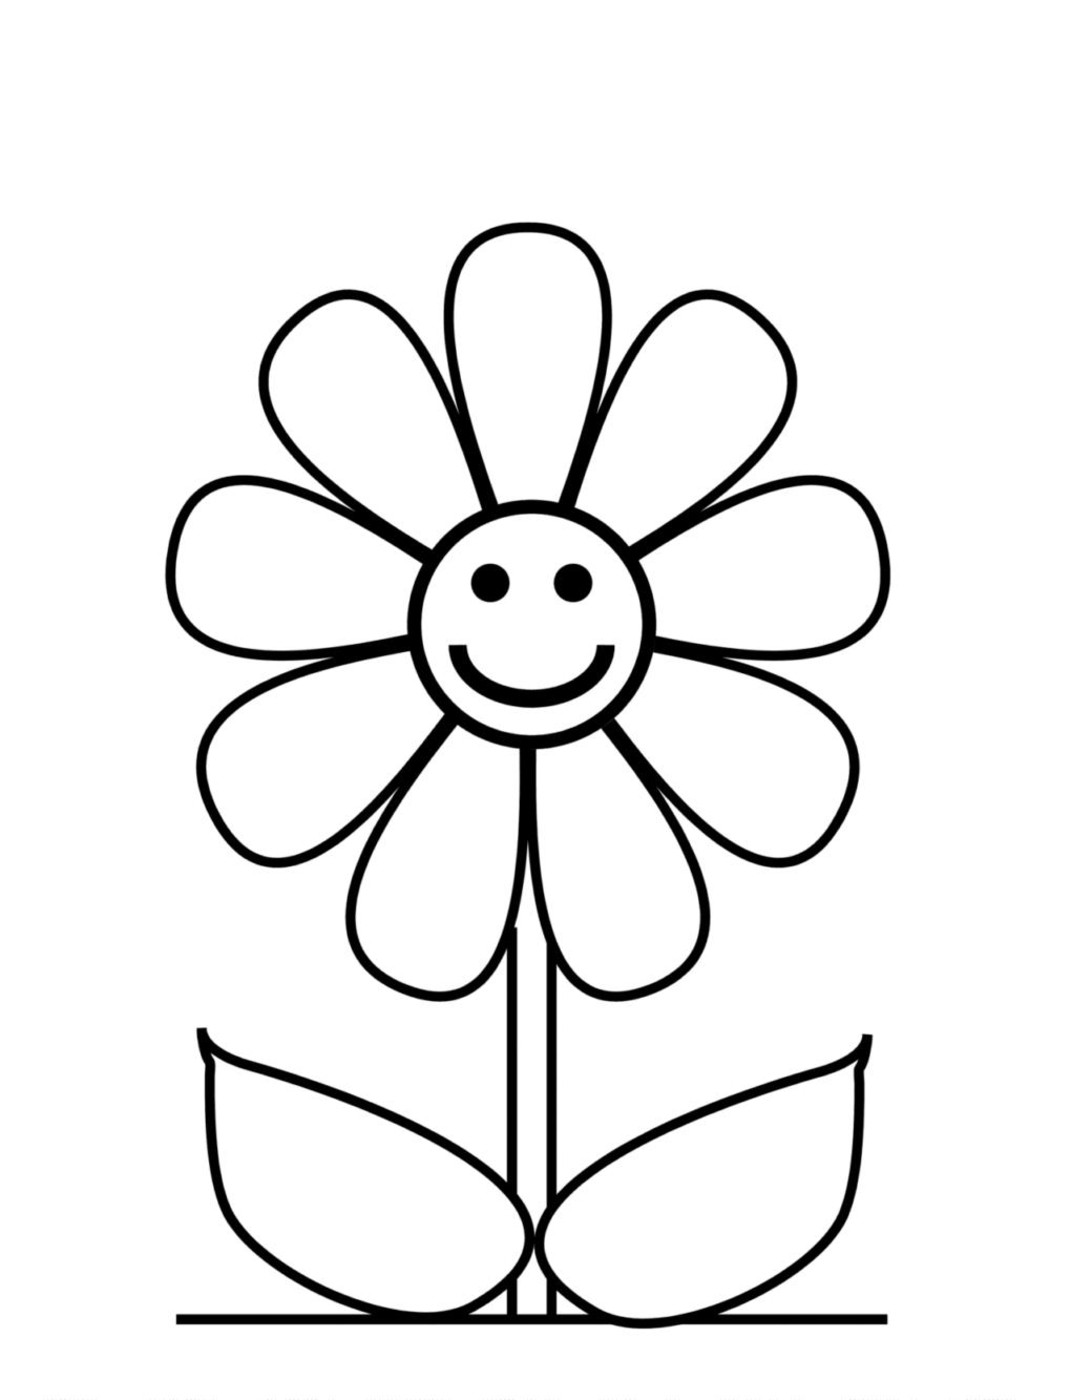 1071x1400 Coloring Pages Of Flowers For Kids